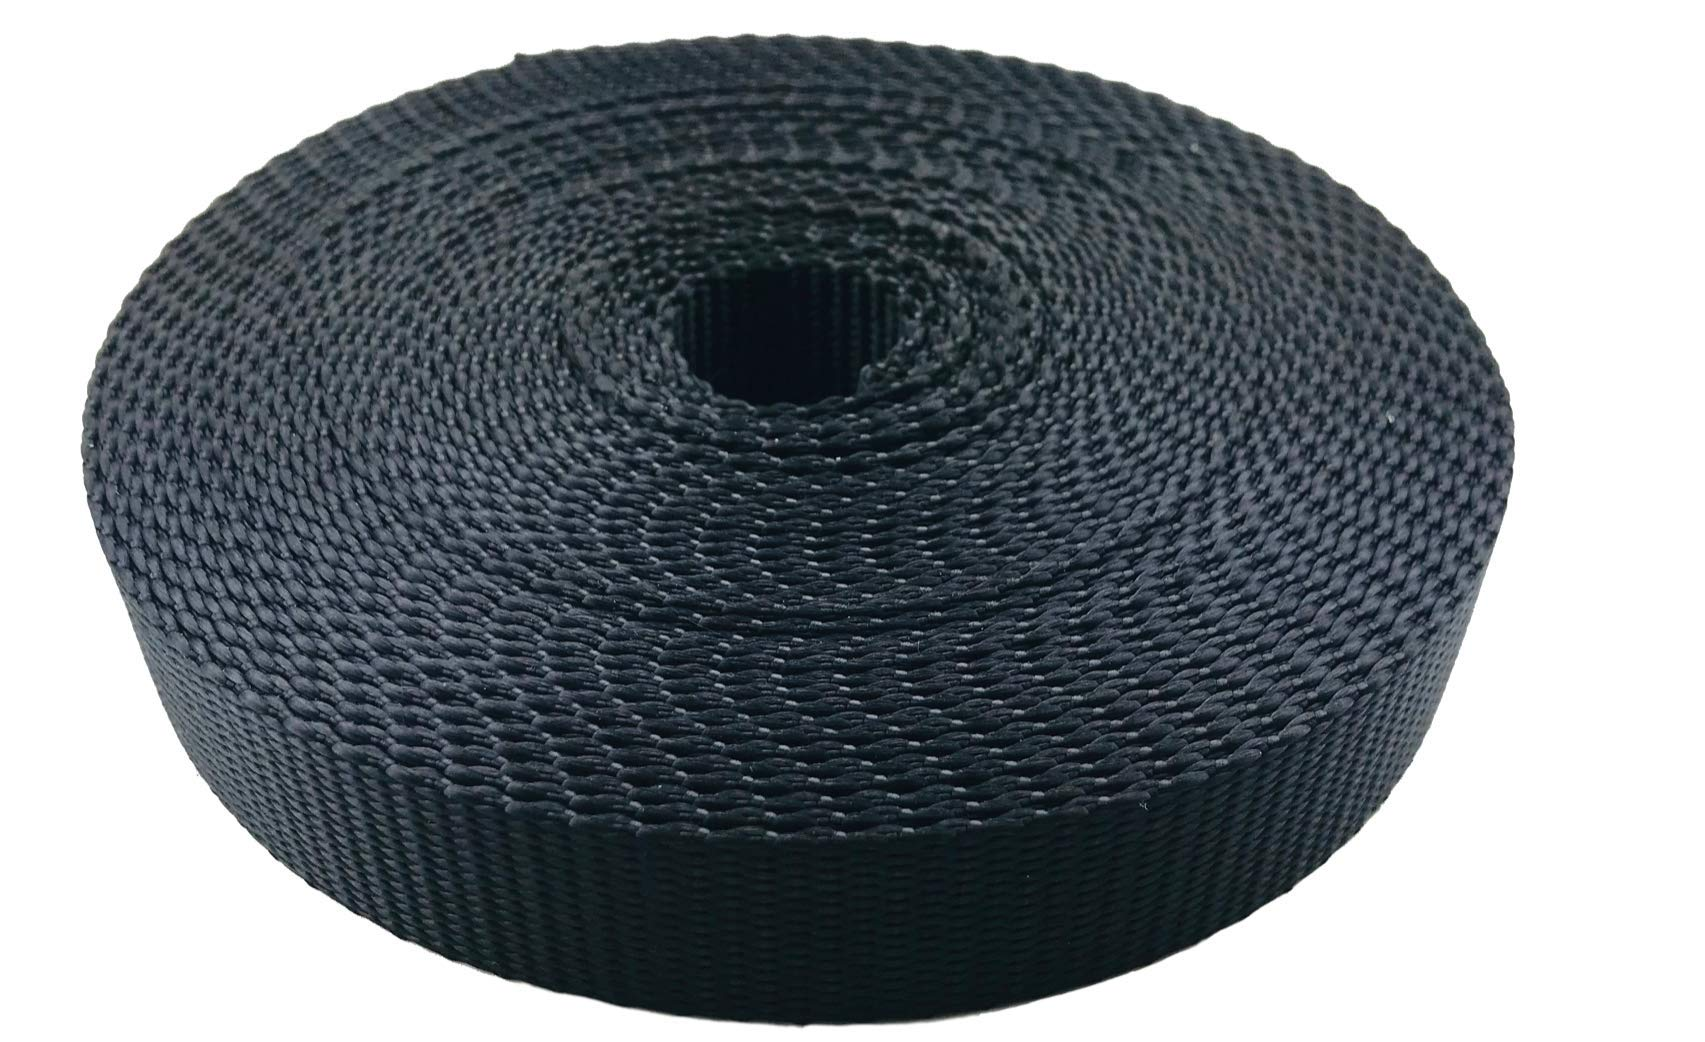 EZ-Xtend Boat Zipper Polyester Webbing 1 inch - Heavy Duty Strapping Outlasts and Outperforms Nylon Webbing 1 Inch and Polypropylene Webbing 1 Inch - 4500 Lb. Breaking Strength (Black, 1'' x 50 Yards) by EZ-Xtend Boat Zipper